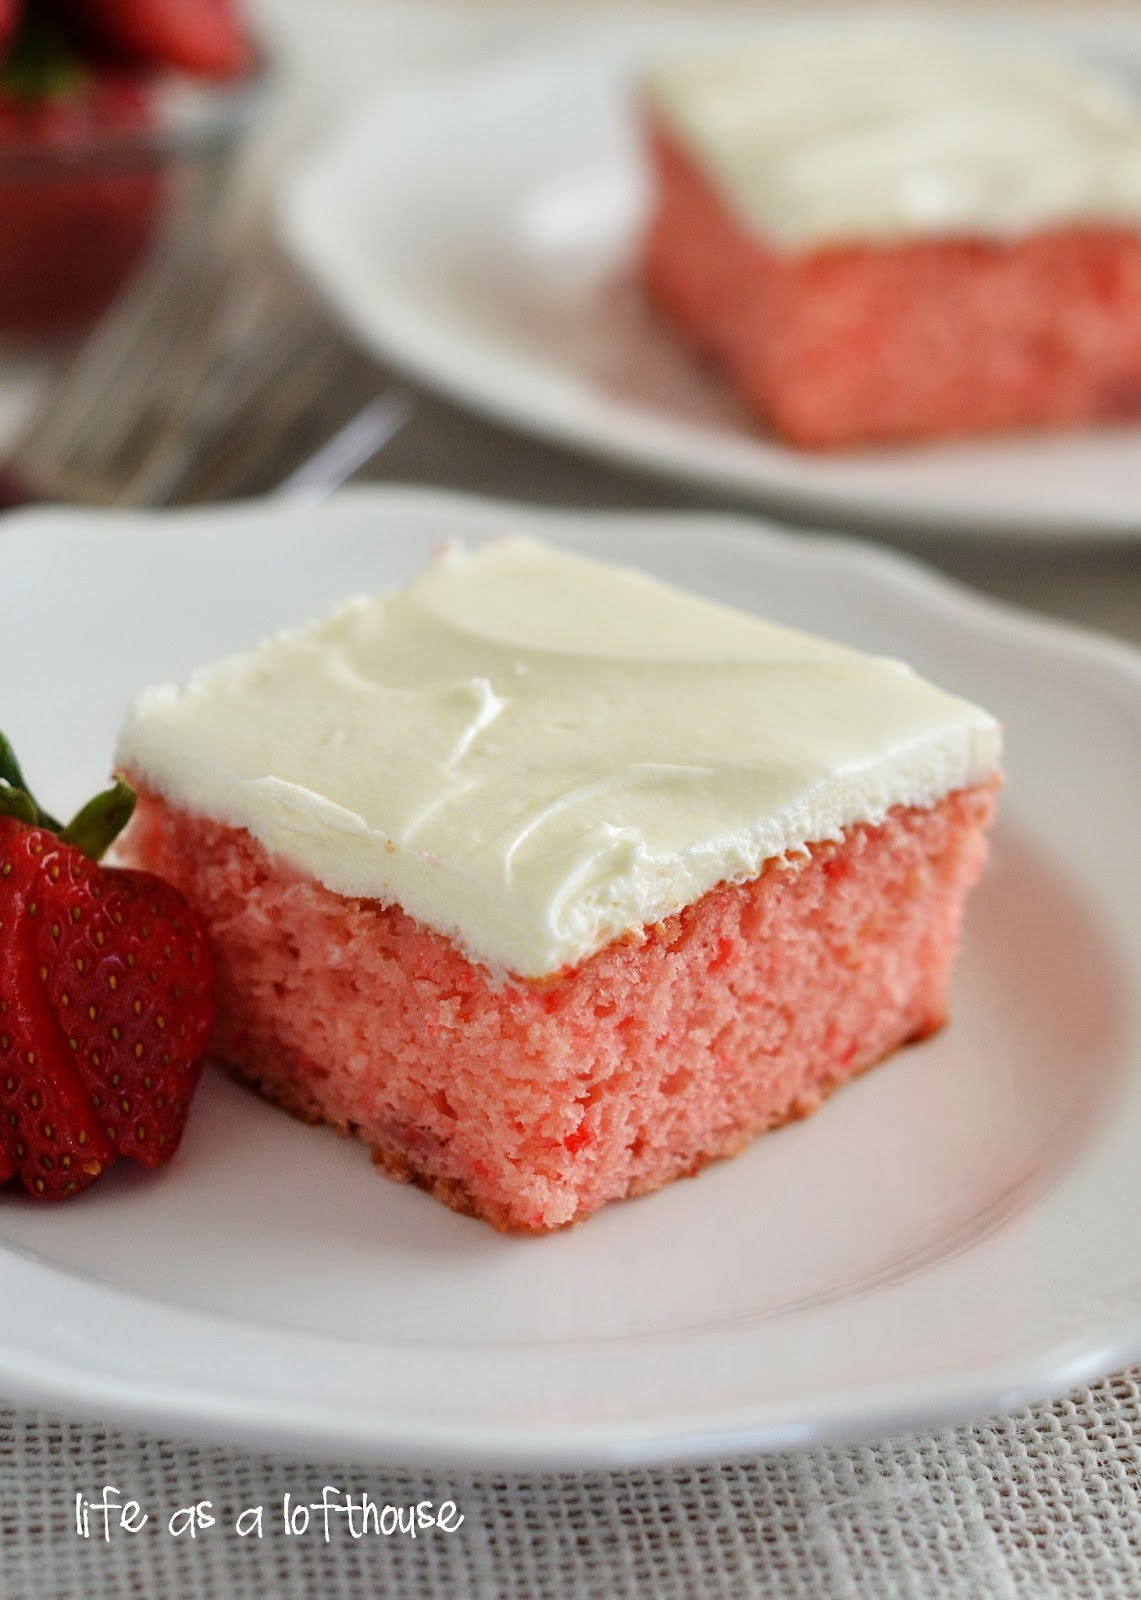 Oct 03,  · This strawberry cake is baked with a simple buttery crumb topping. This is an easy and delicious way to enjoy fresh spring strawberries. The crumb topping can be made with or without chopped nuts, or add some toasted coconut to the topping sofltappetizer.tkted Fat 7g: 37%.